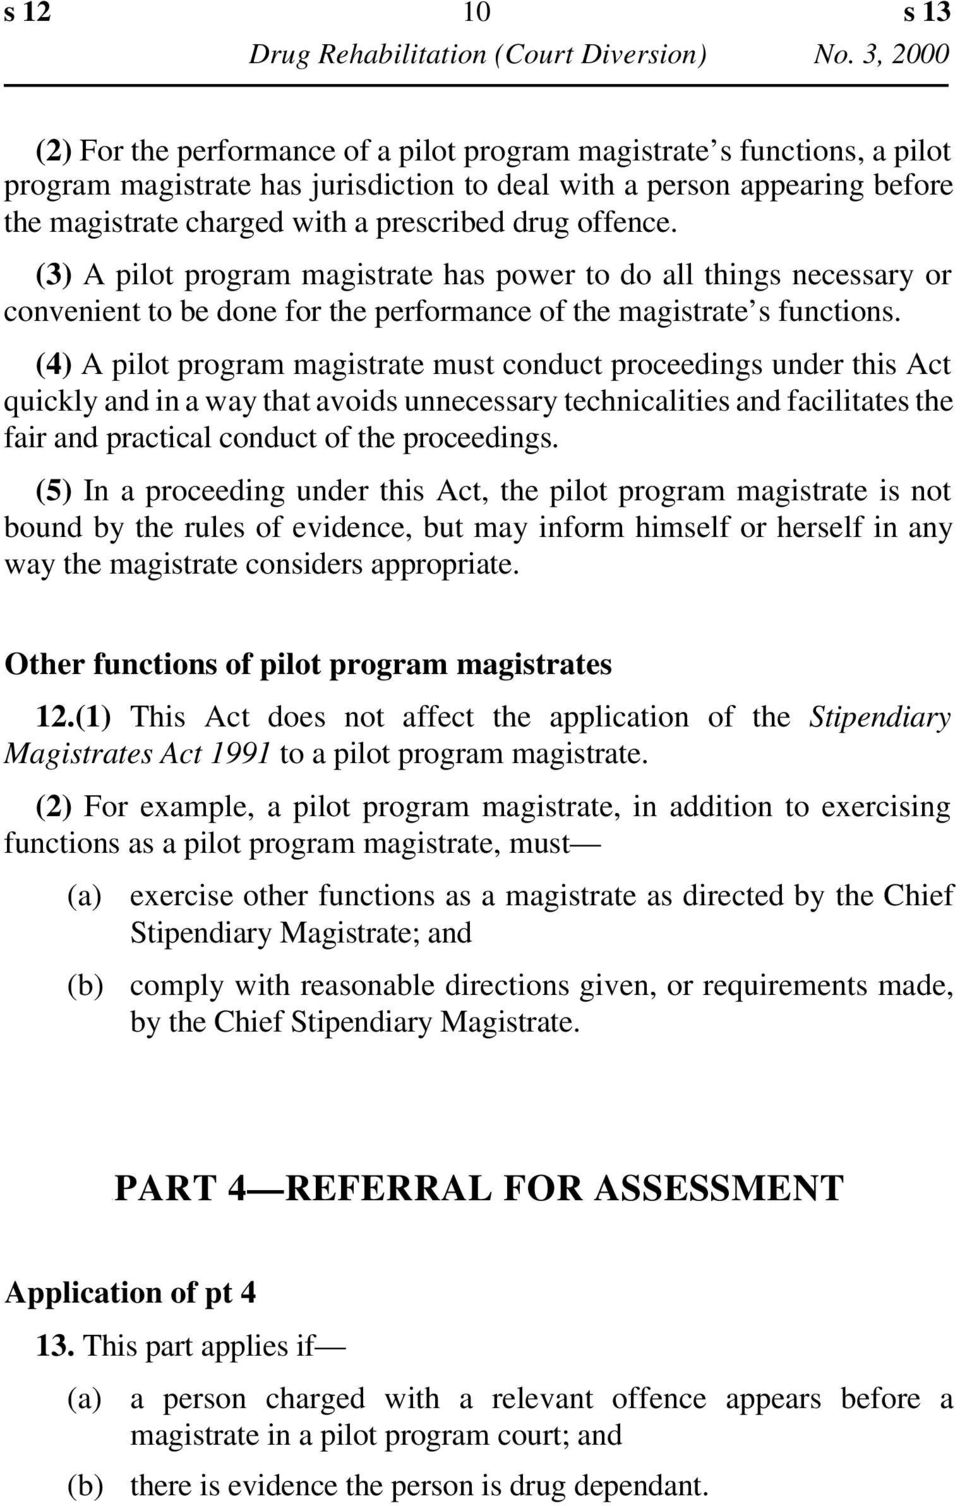 (4) A pilot program magistrate must conduct proceedings under this Act quickly and in a way that avoids unnecessary technicalities and facilitates the fair and practical conduct of the proceedings.